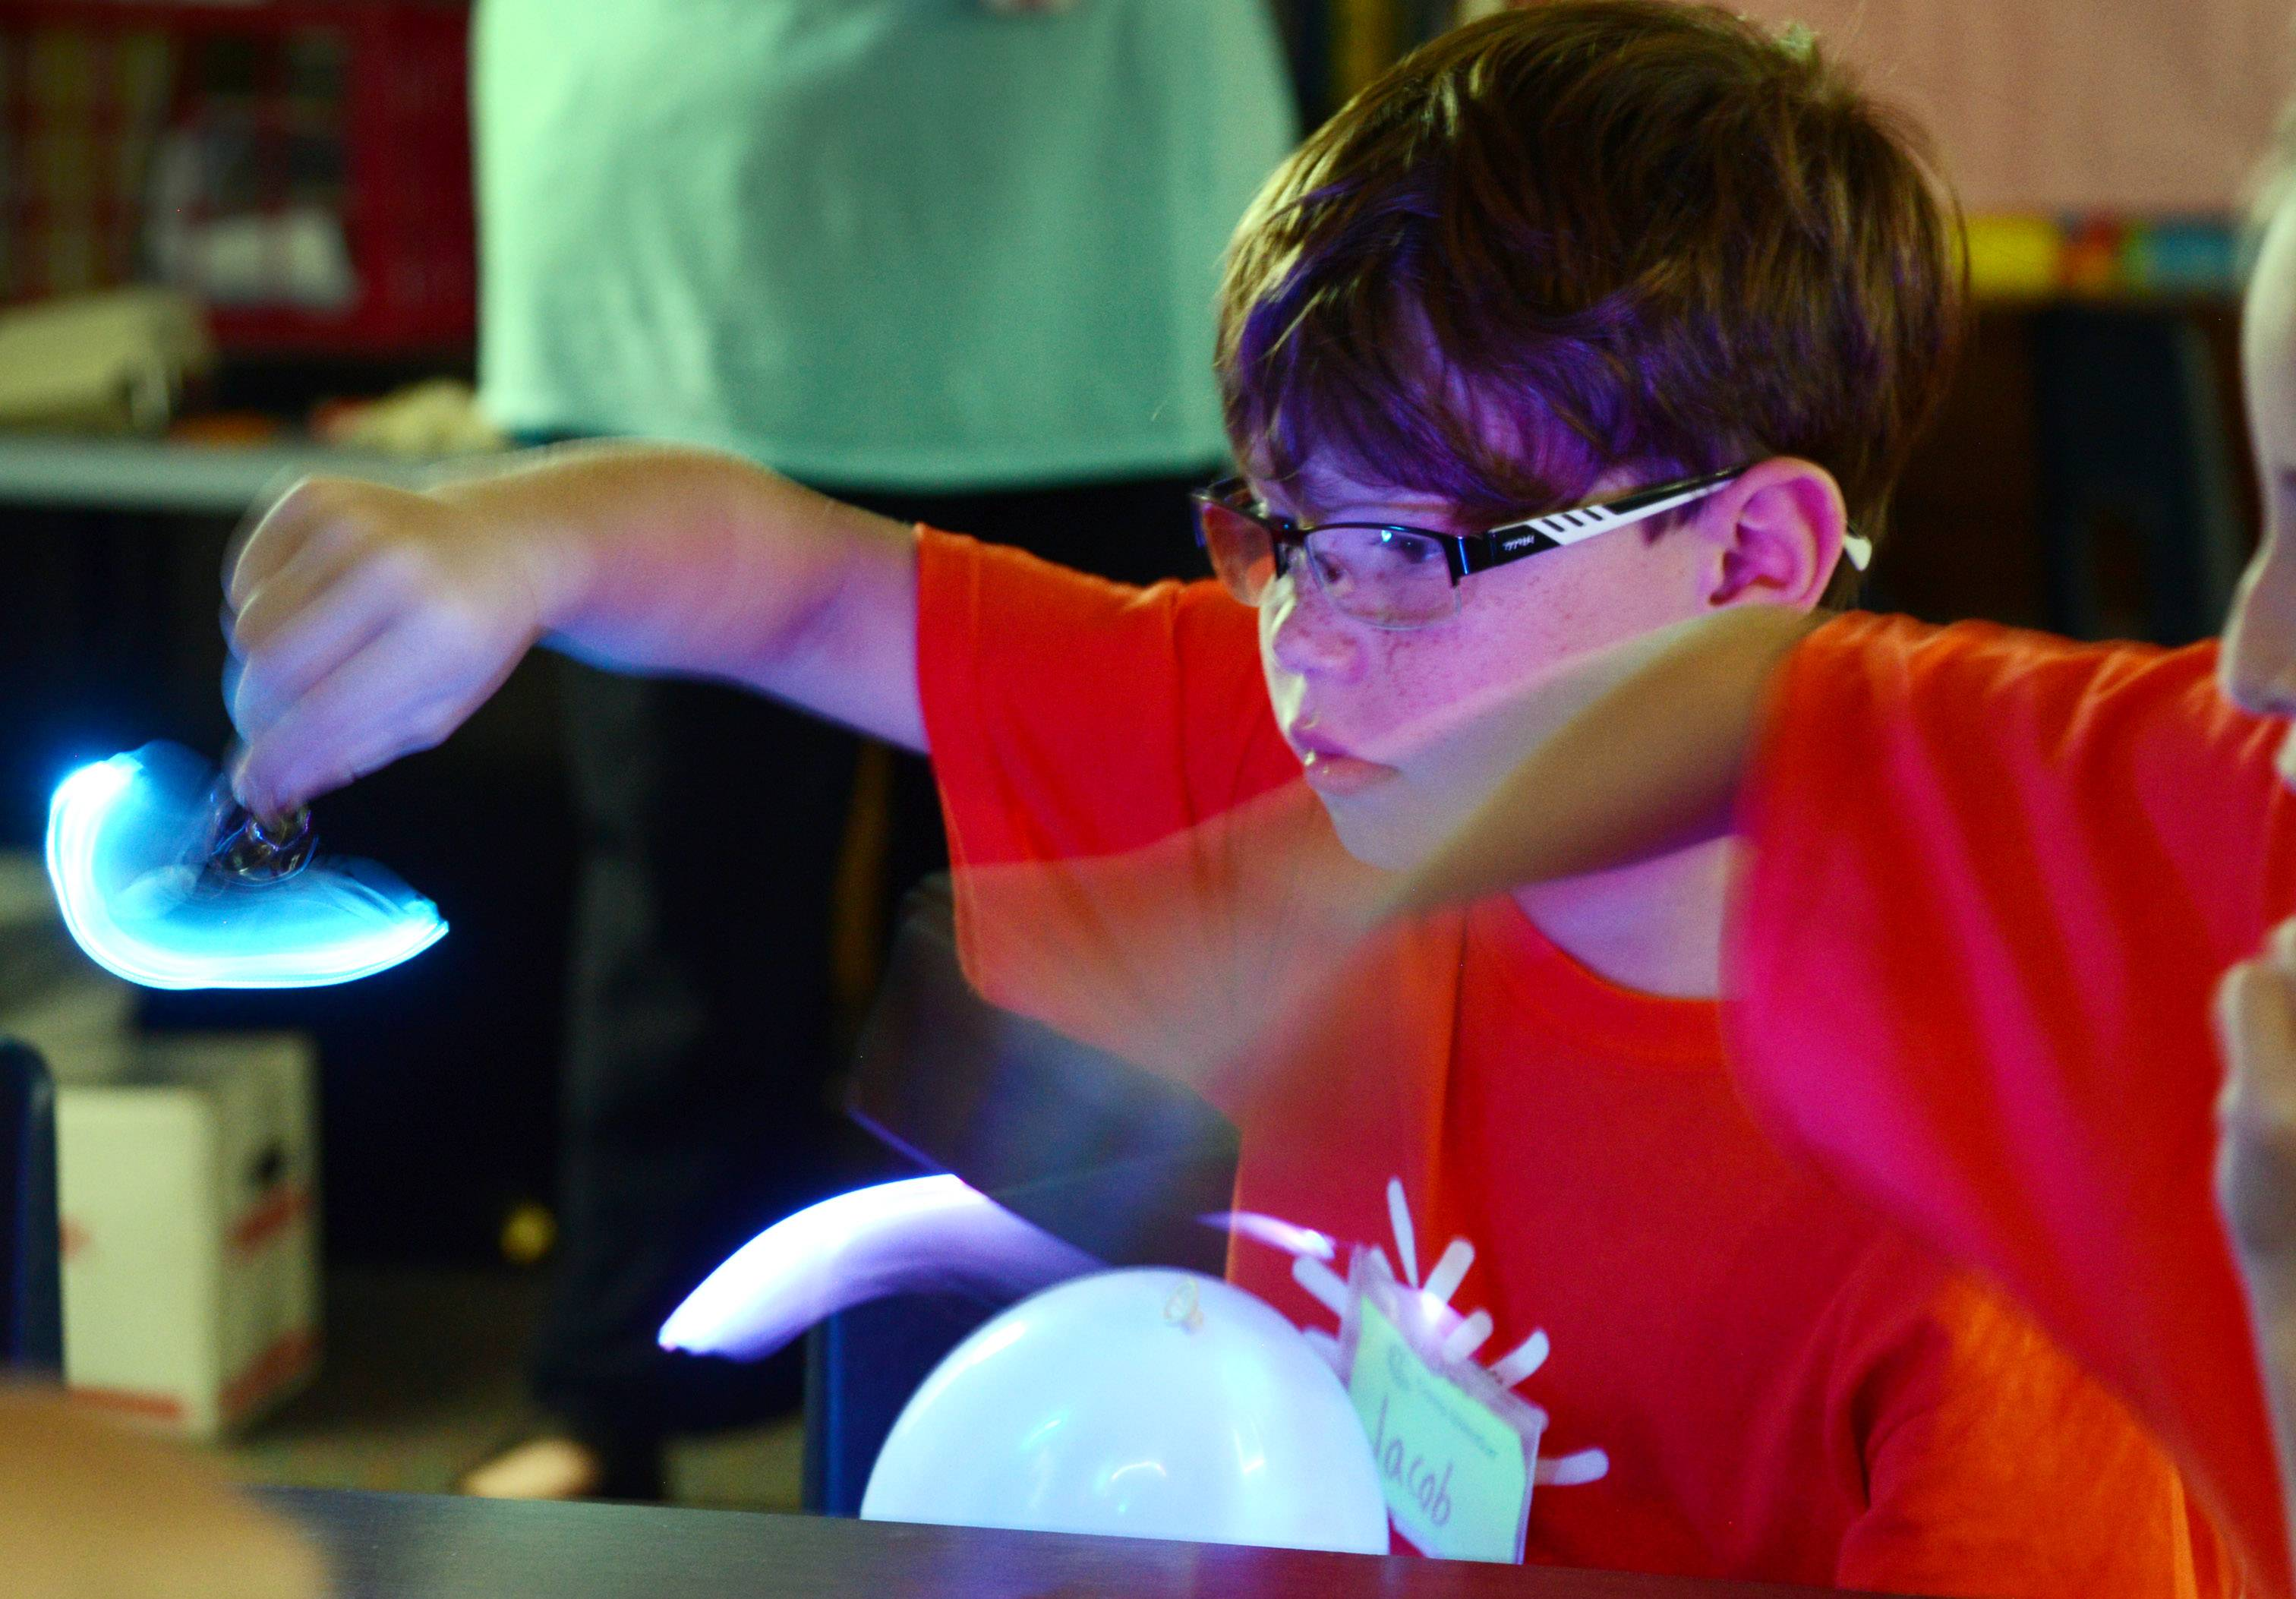 Jacob Whisenand and fellow students play with light sources during the Where Pigs Fly and Anything is Possible session at Rockland School in Libertyville on Friday.